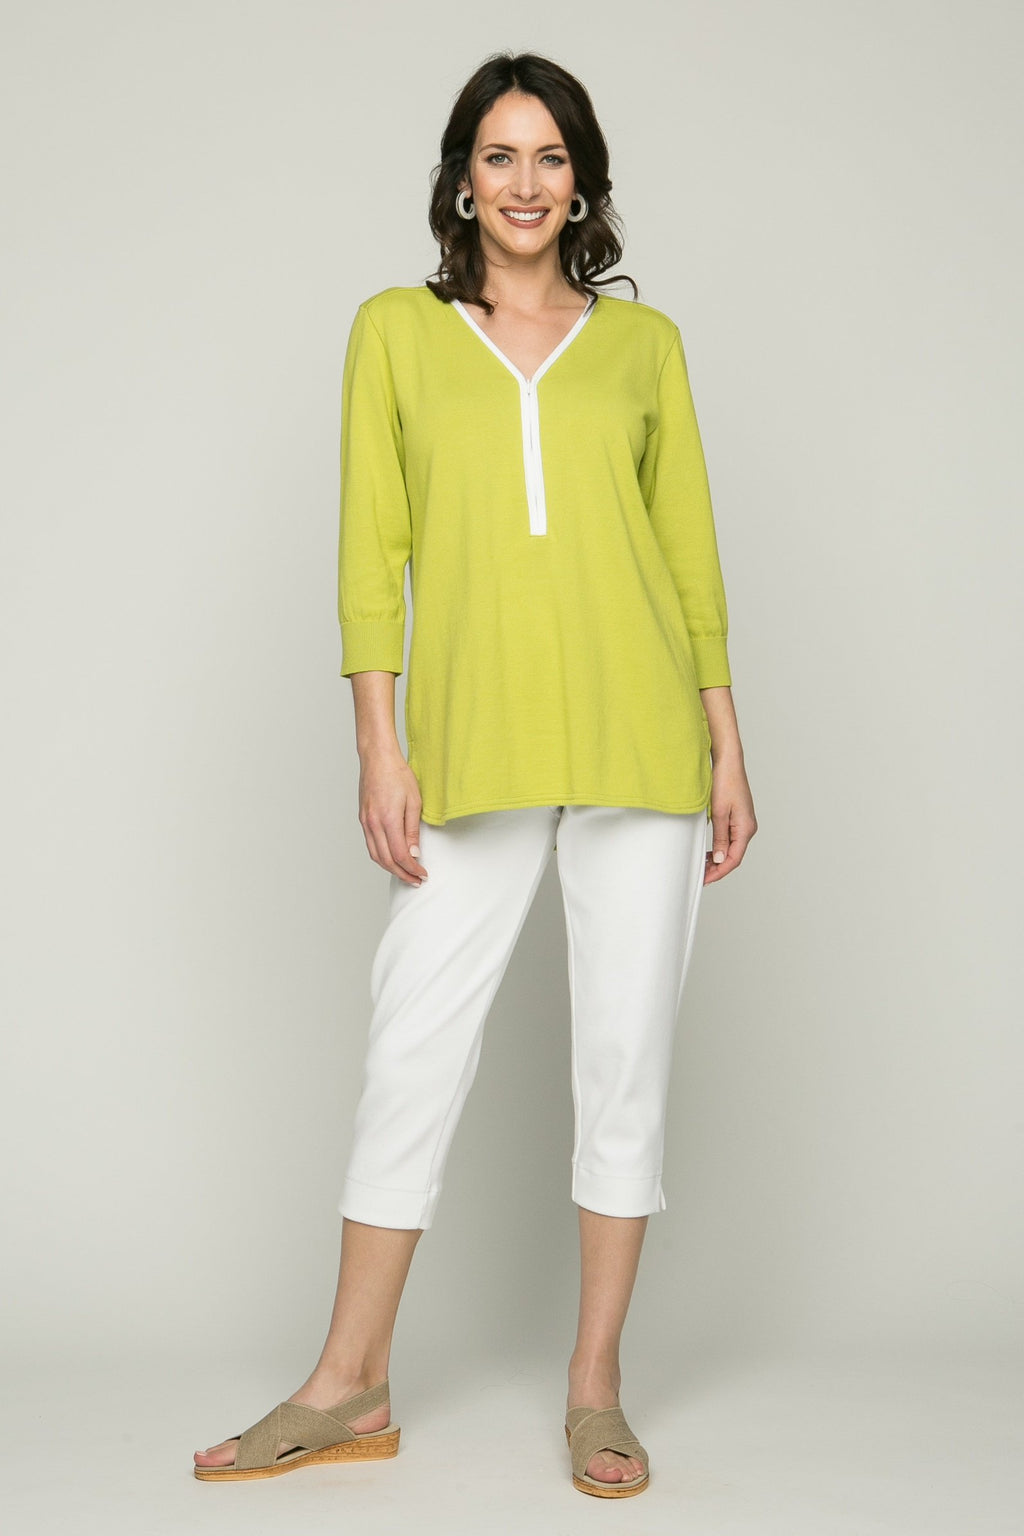 ¾ Sleeve Zip V Neck Top